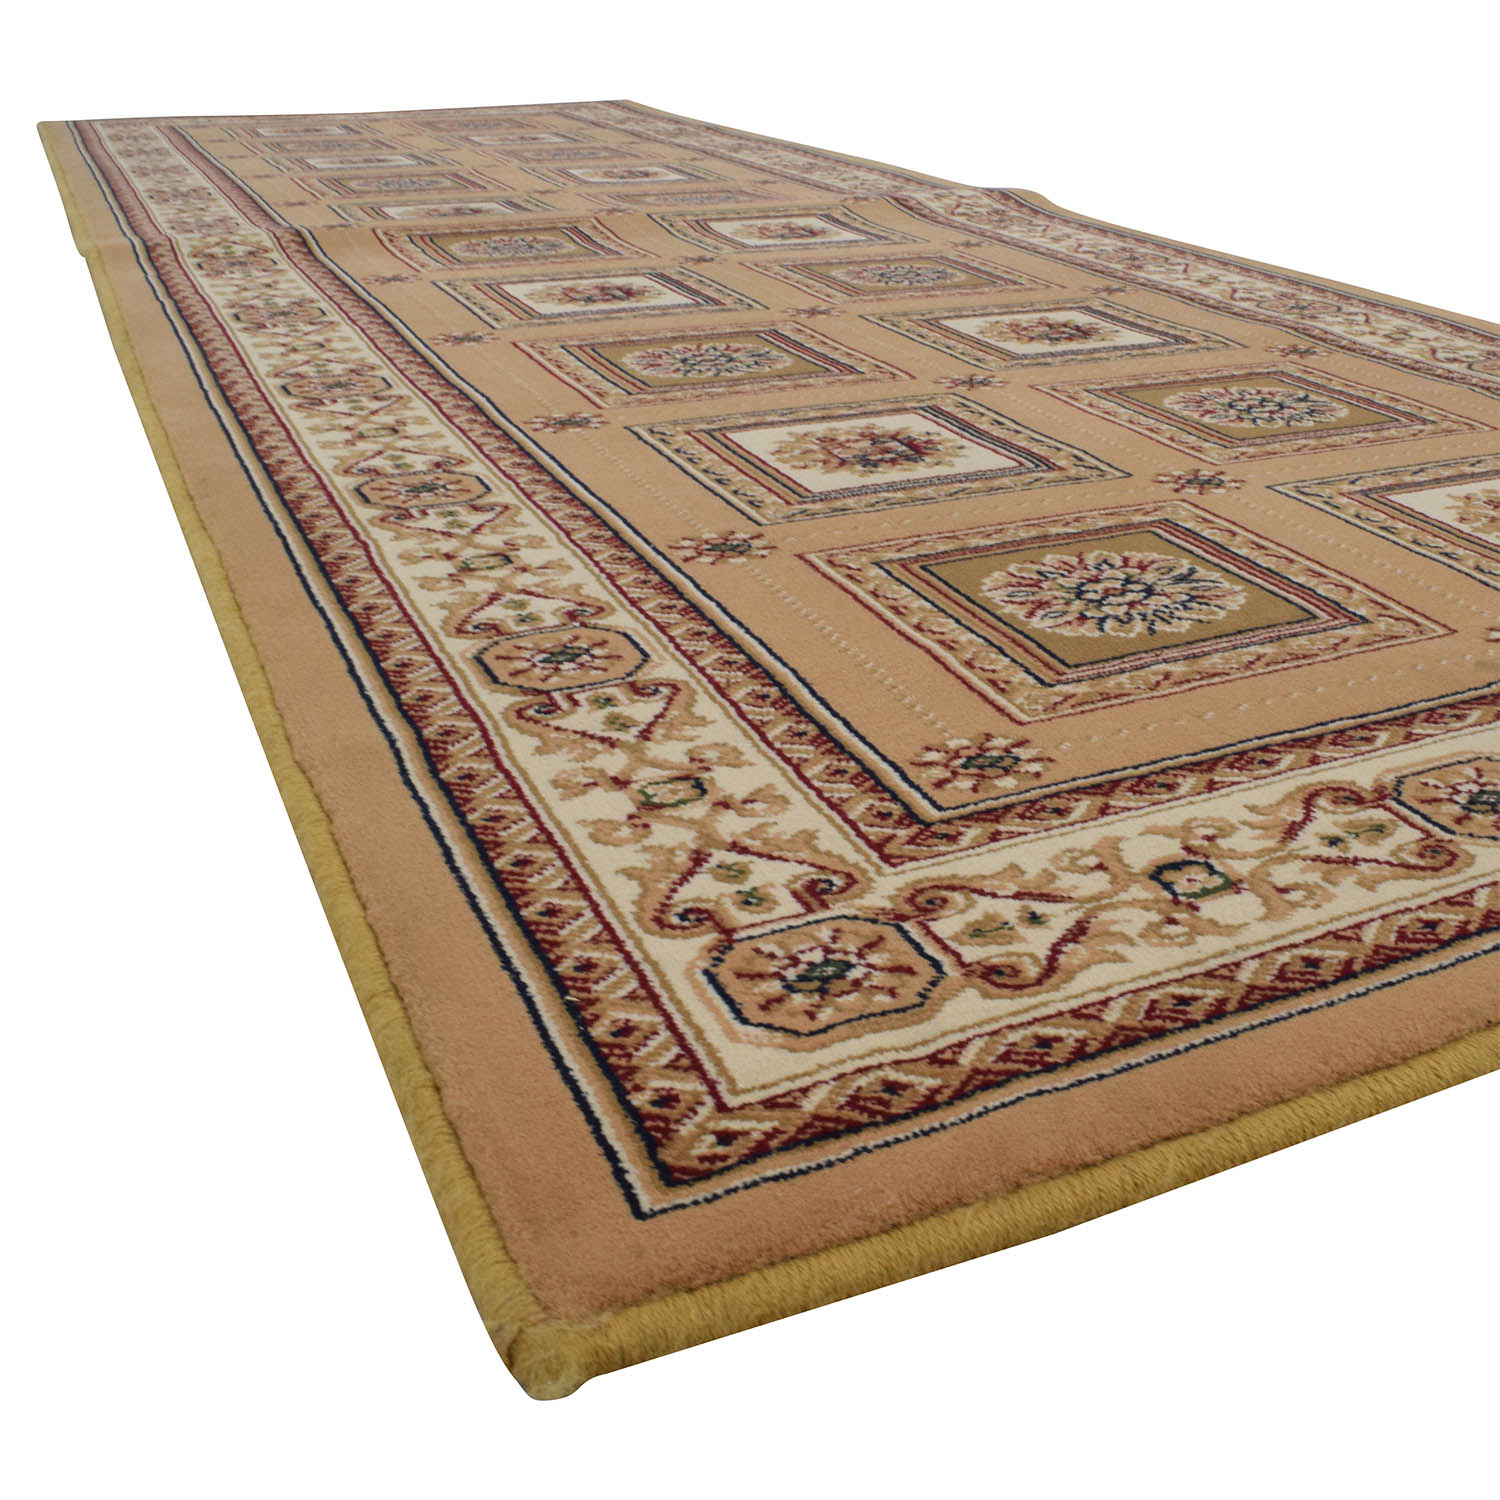 Regency Regency Persian Tan 27 x 76 Rug Runner price